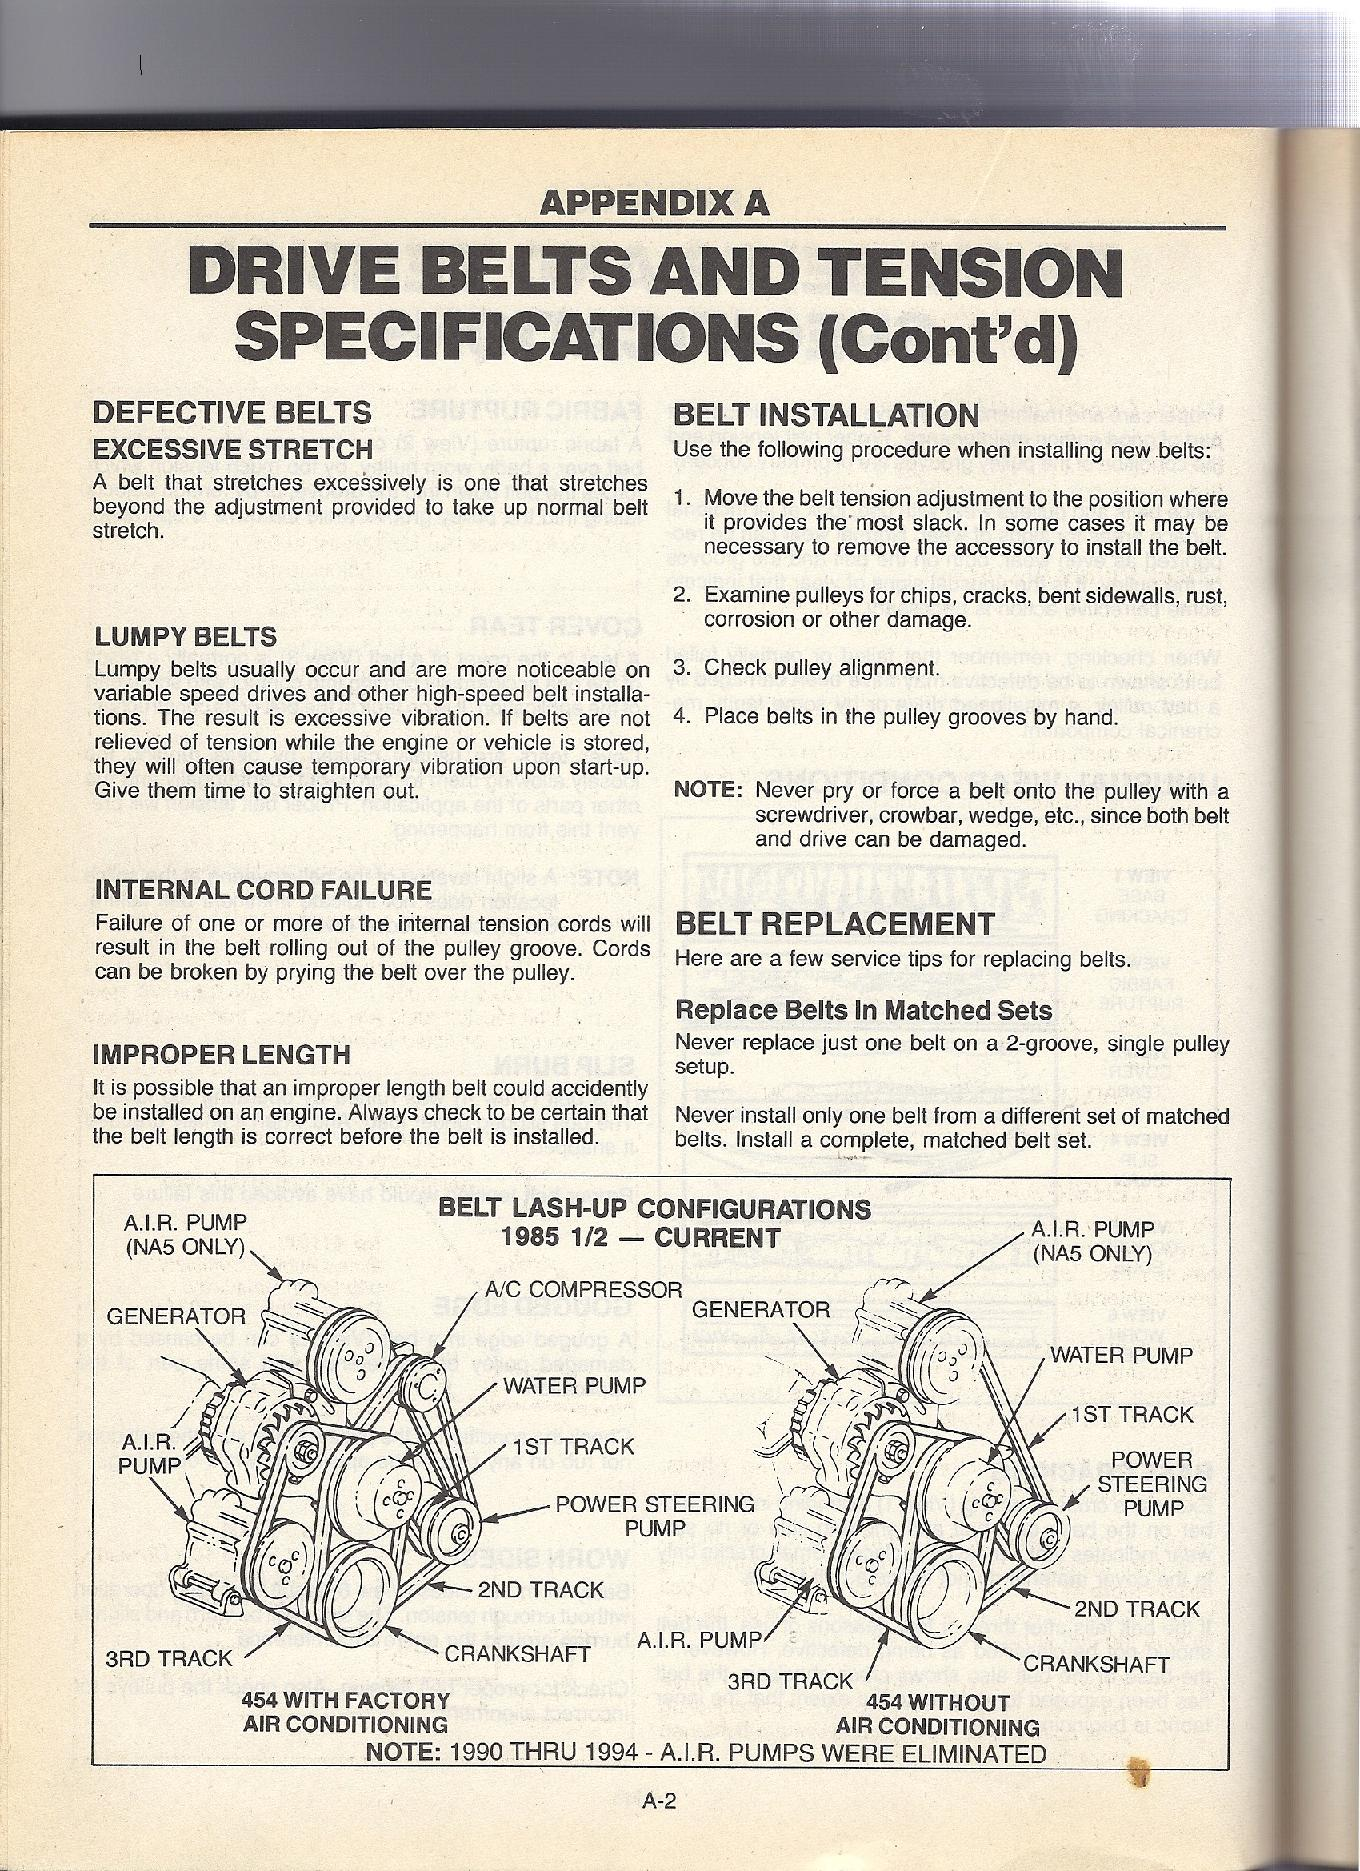 1985 chevy fan clutch web for a diagram i see 3 belts graphic